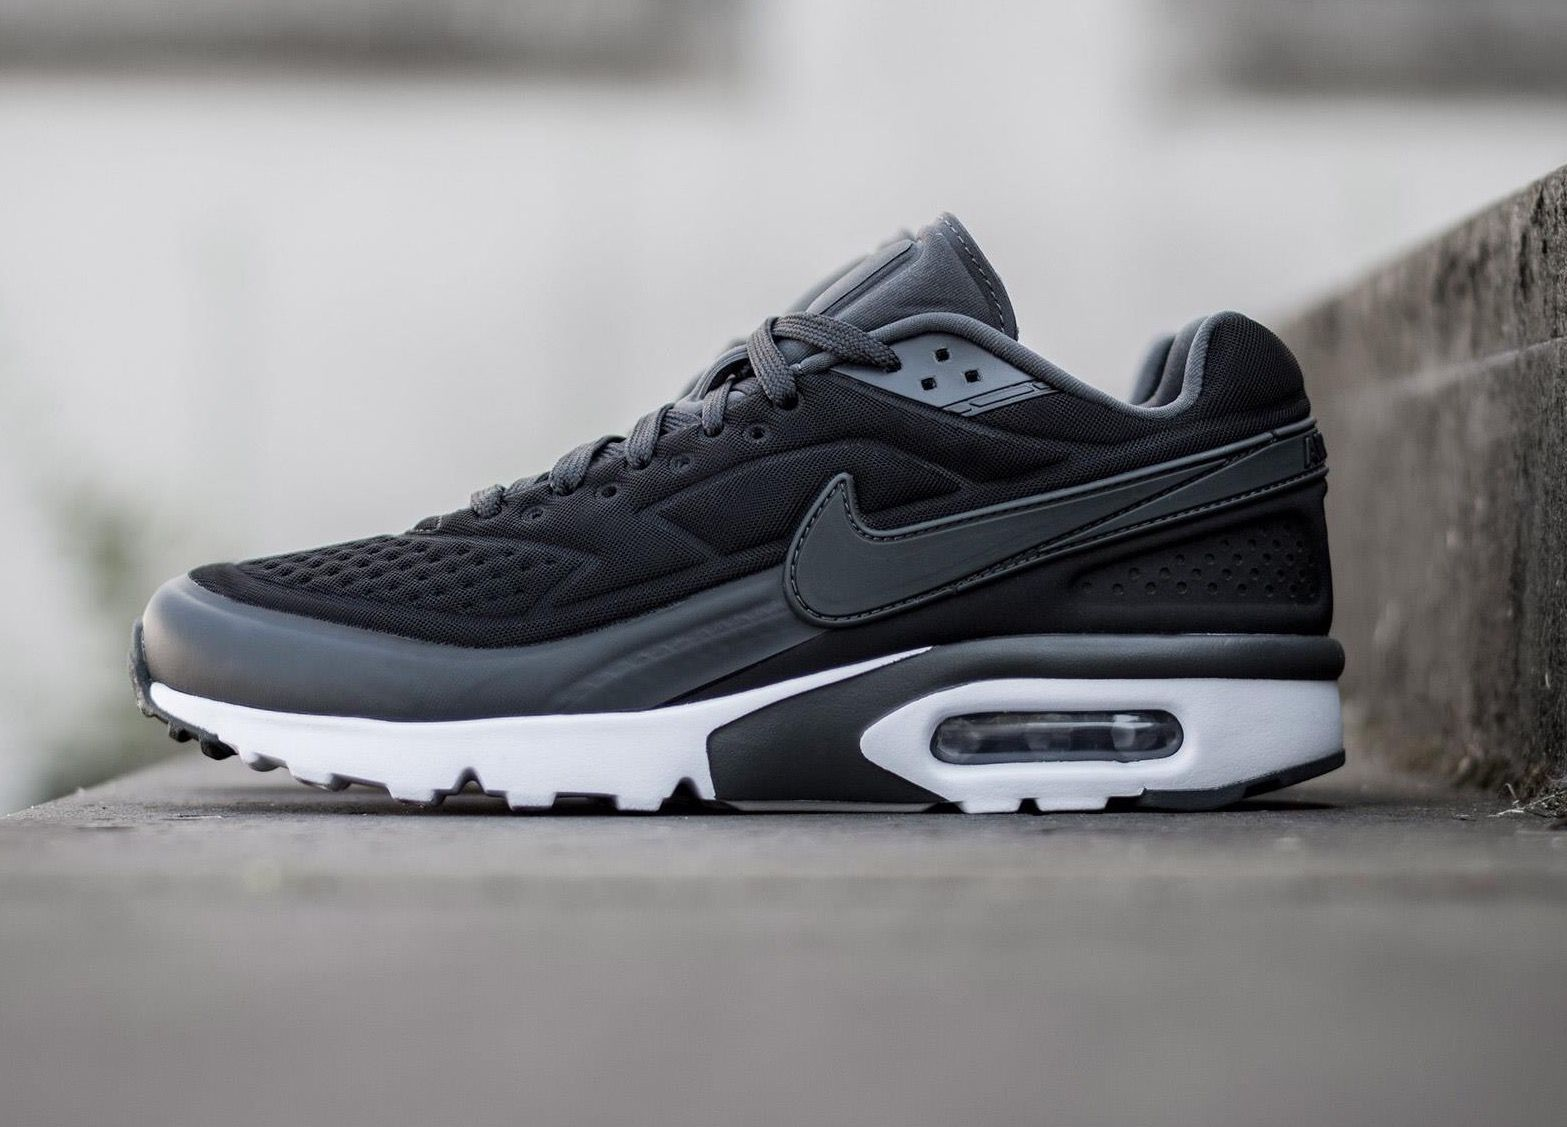 huge sale fast delivery best deals on Nike Air Classic BW Ultra: Black/Grey | Nike shoes air max, Nike ...